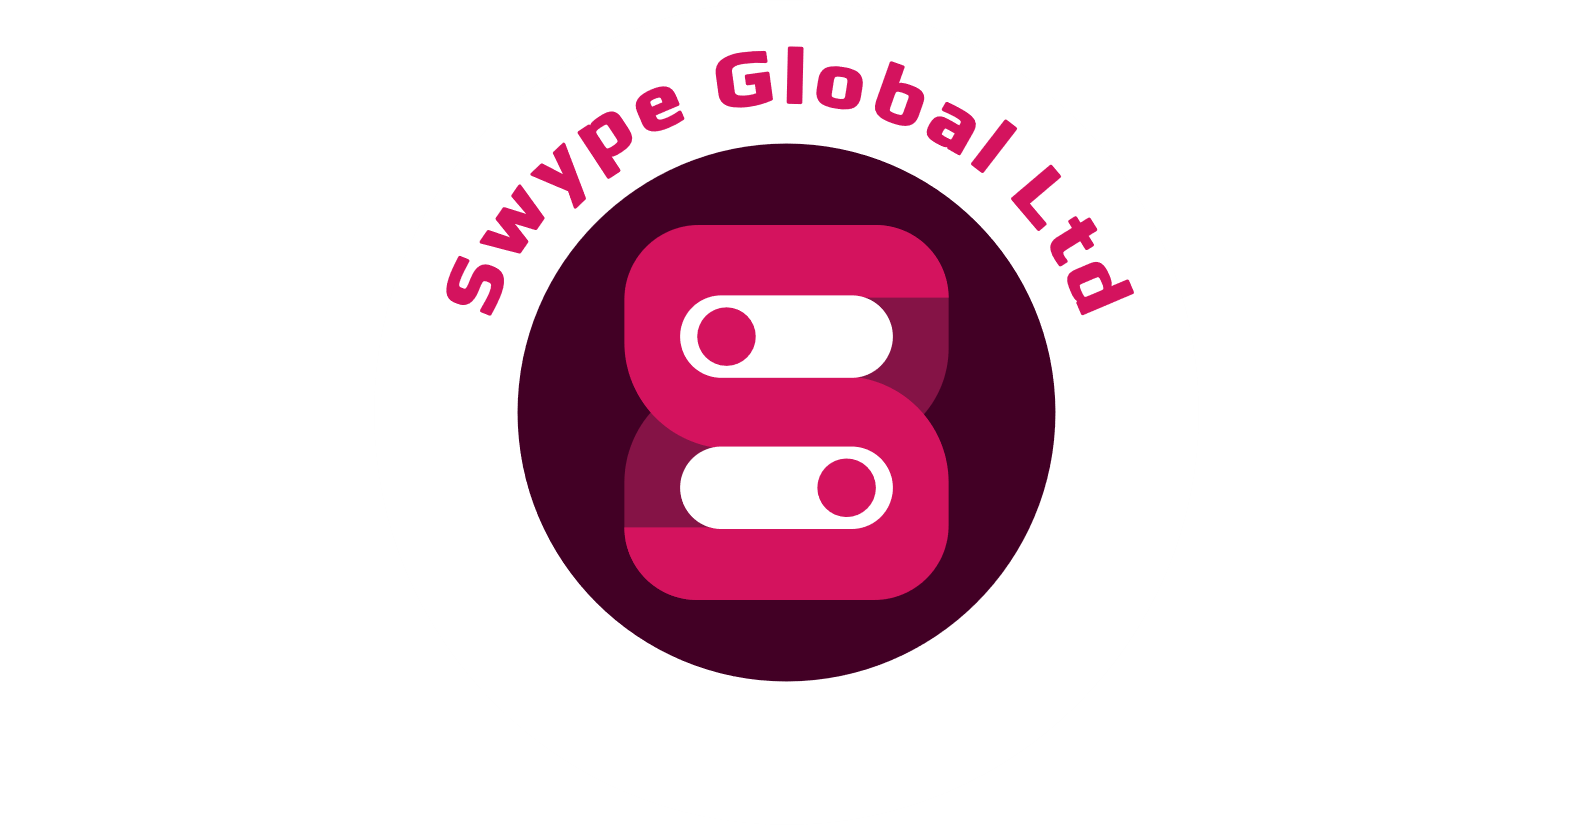 Swype Global Ltd